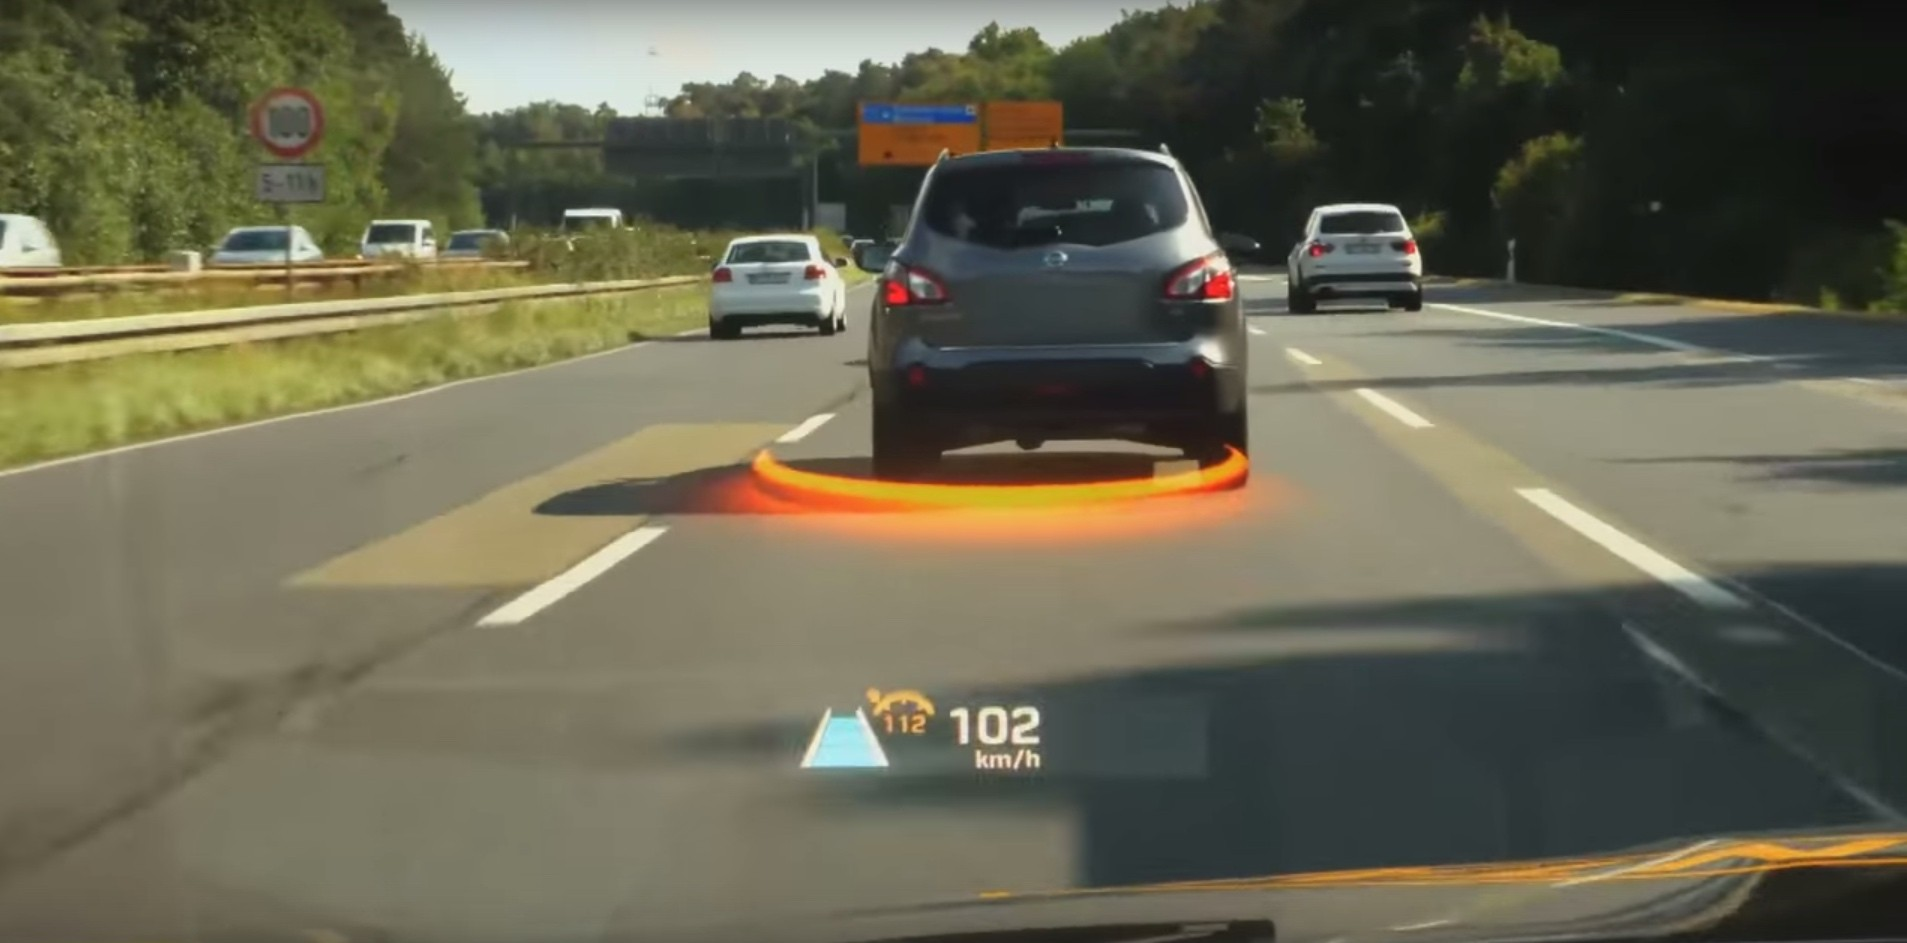 Three Future Safety Technologies That Could Change Driving